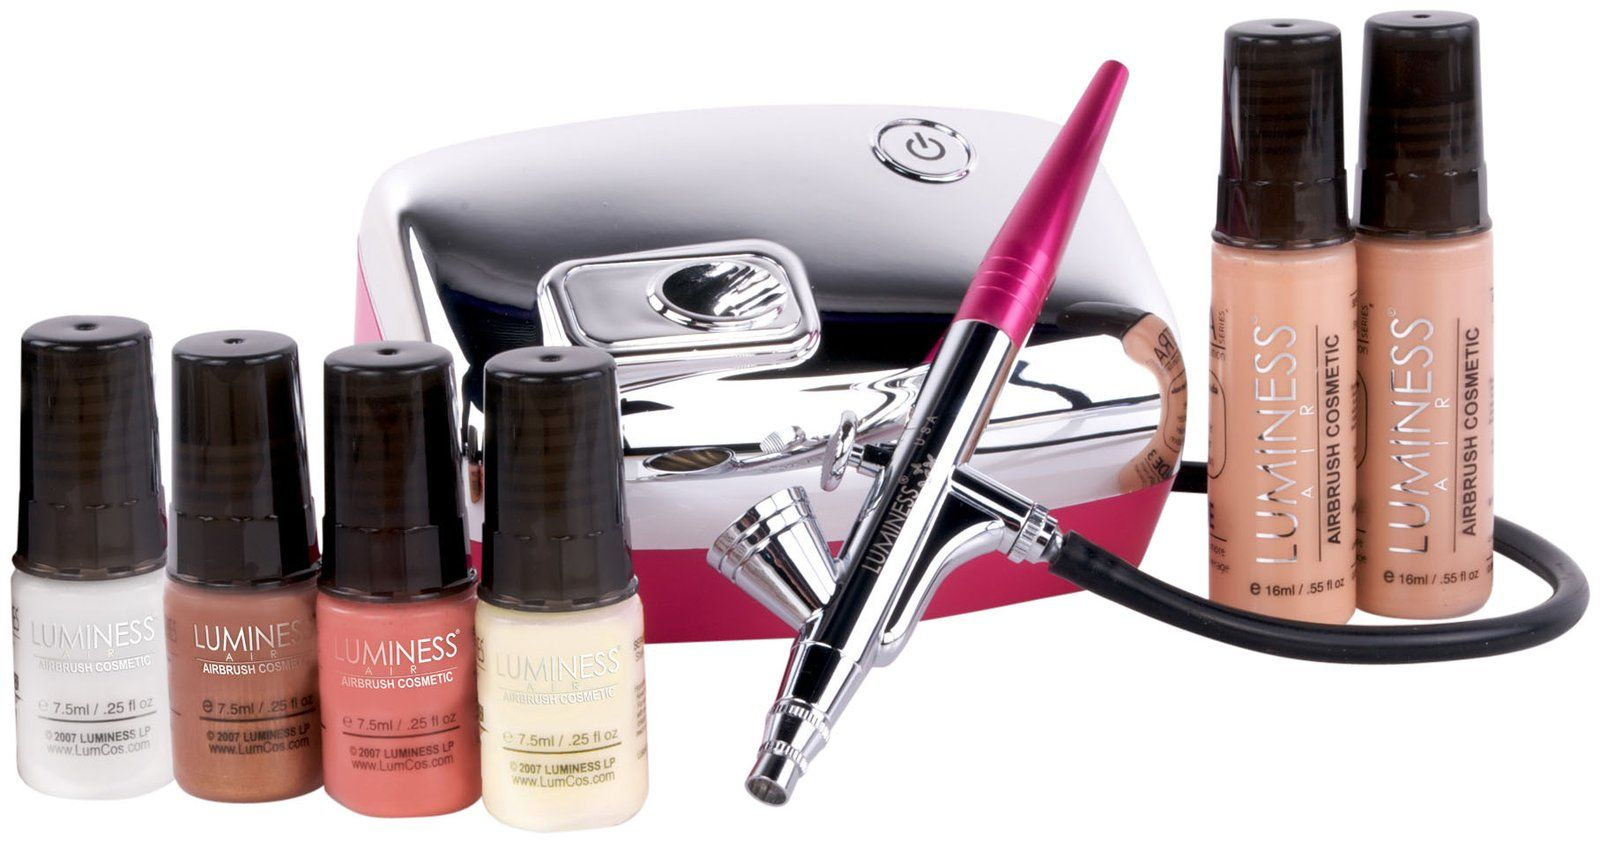 Luminess Air Heiress System Airbrush makeup reviews